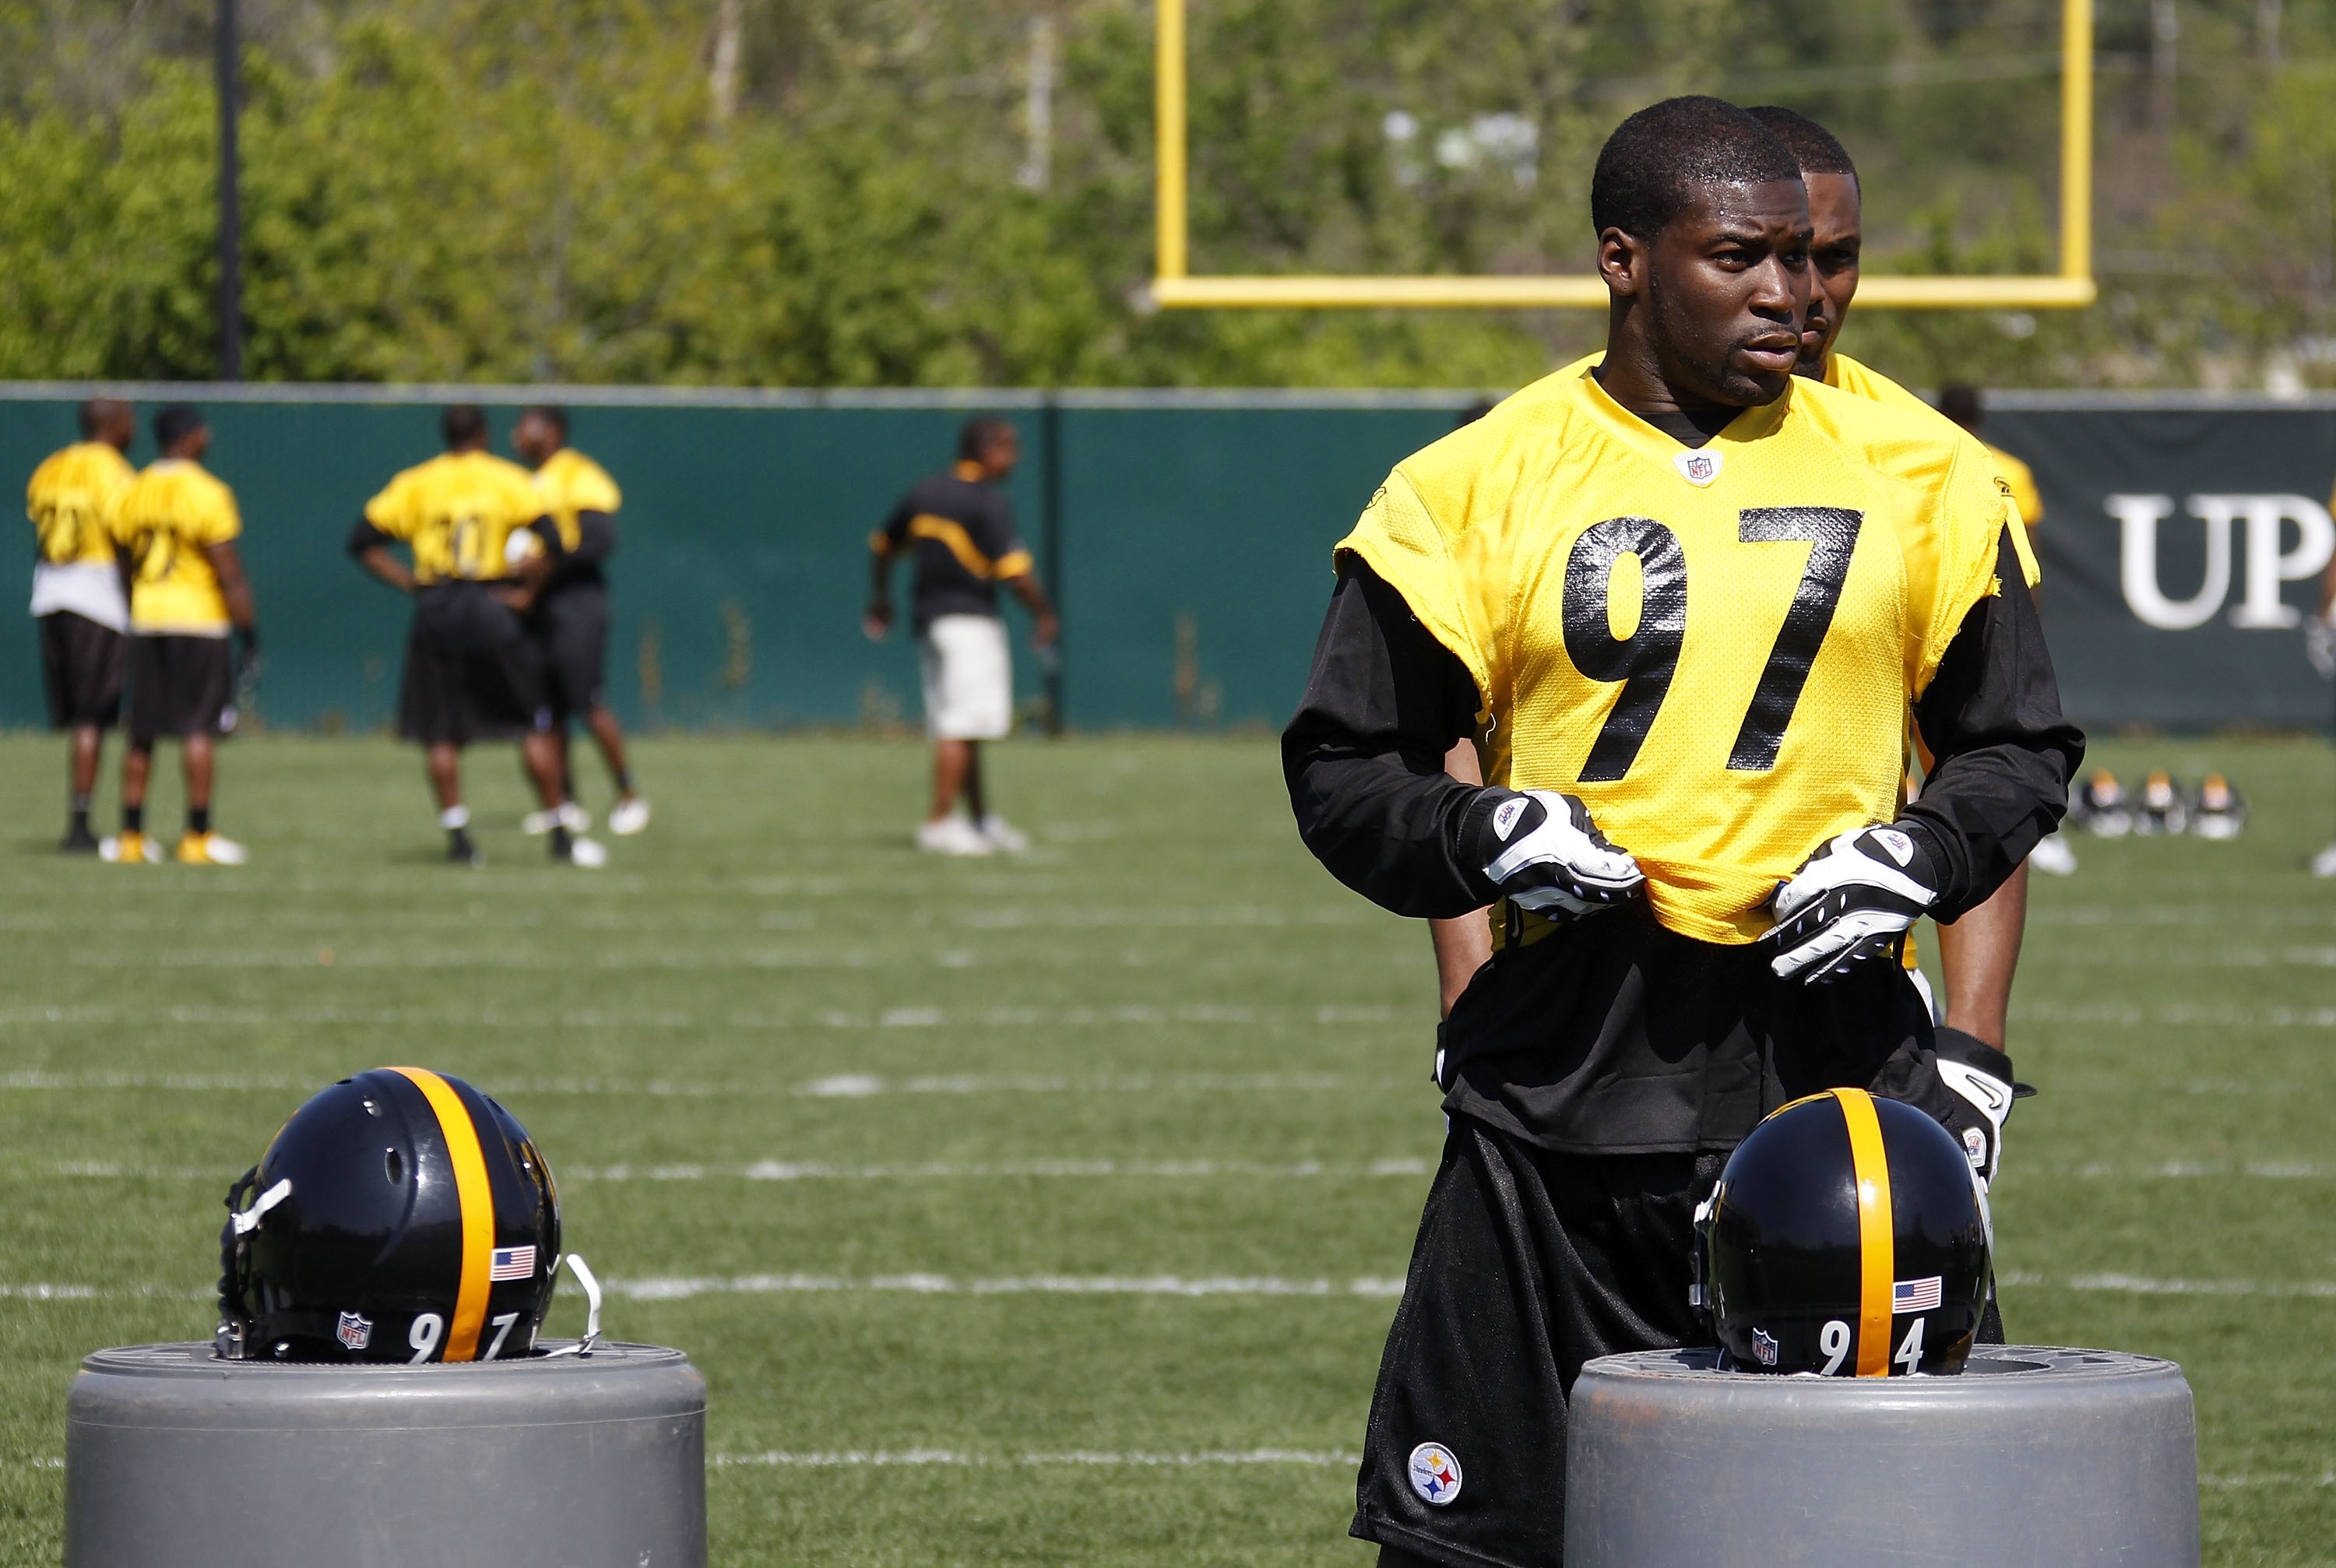 PITTSBURGH - APRIL 30:  Jason Worilds #97 of the Pittsburgh Steelers gets ready to run a drill during mini camp at the Pittsburgh Steelers Training Facility on April 30, 2010 in Pittsburgh, Pennsylvania.  (Photo by Gregory Shamus/Getty Images)